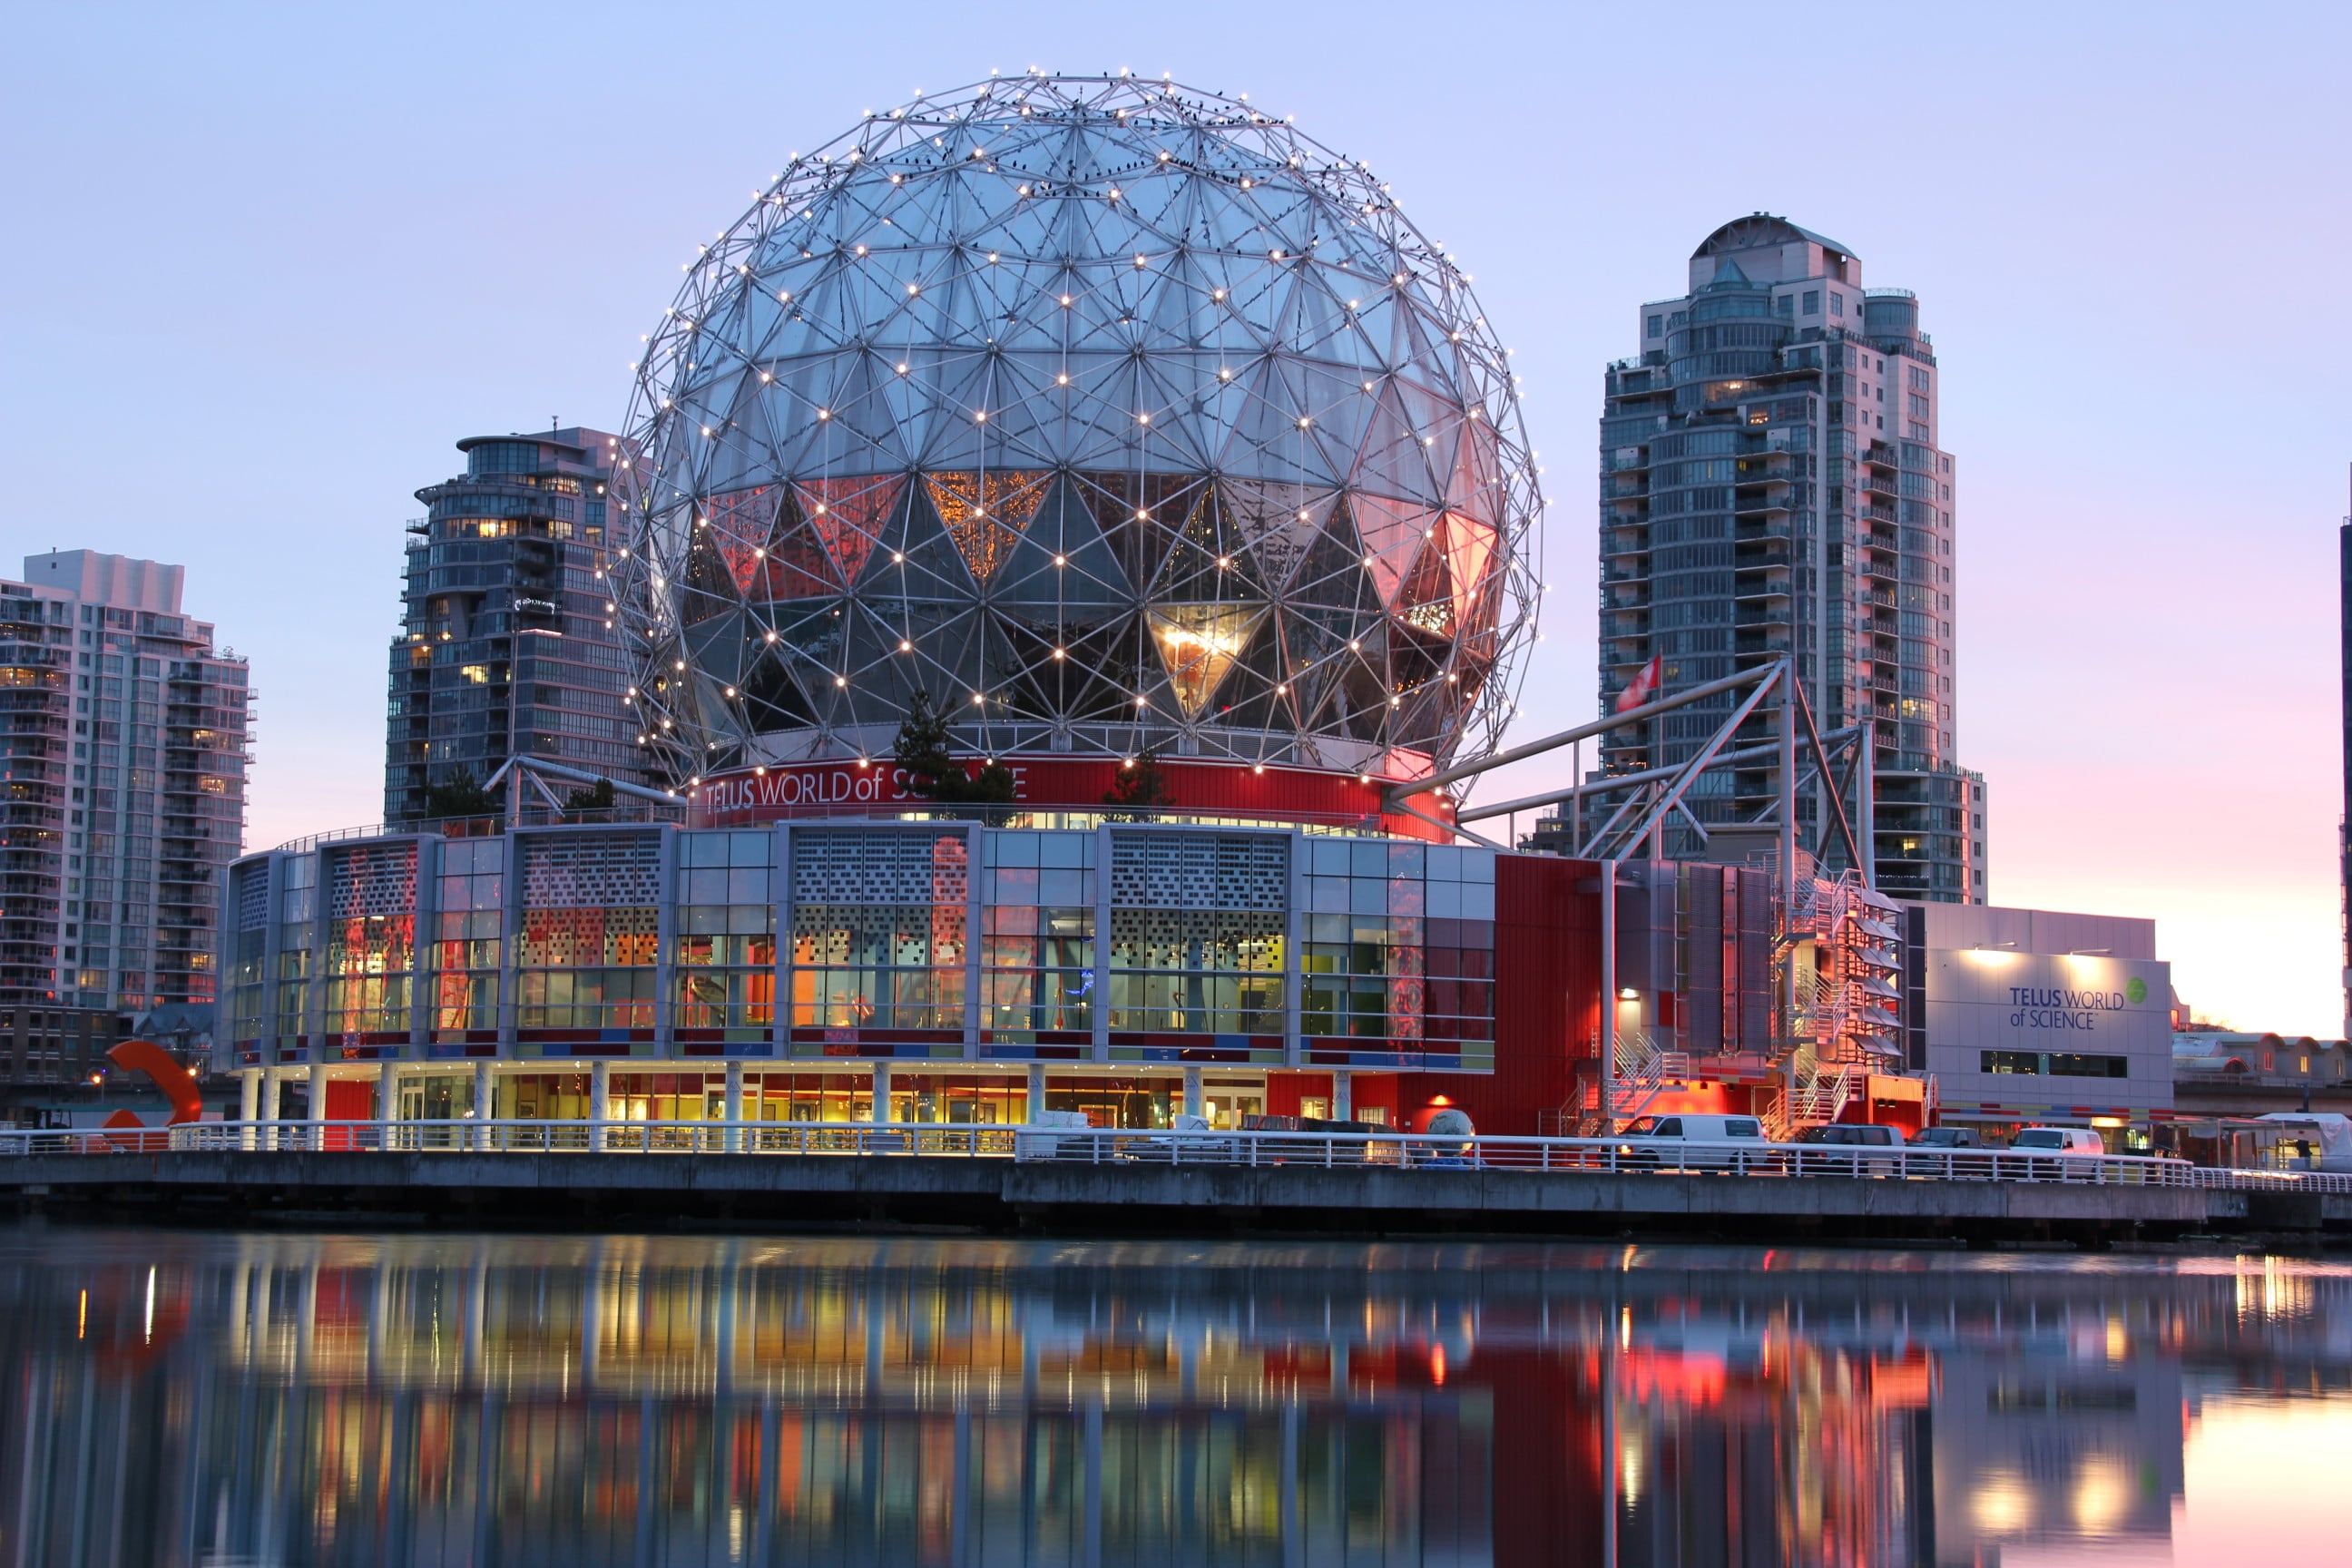 Free Admission At Science World 2015 - Science World After Dark - An Adults Only Event